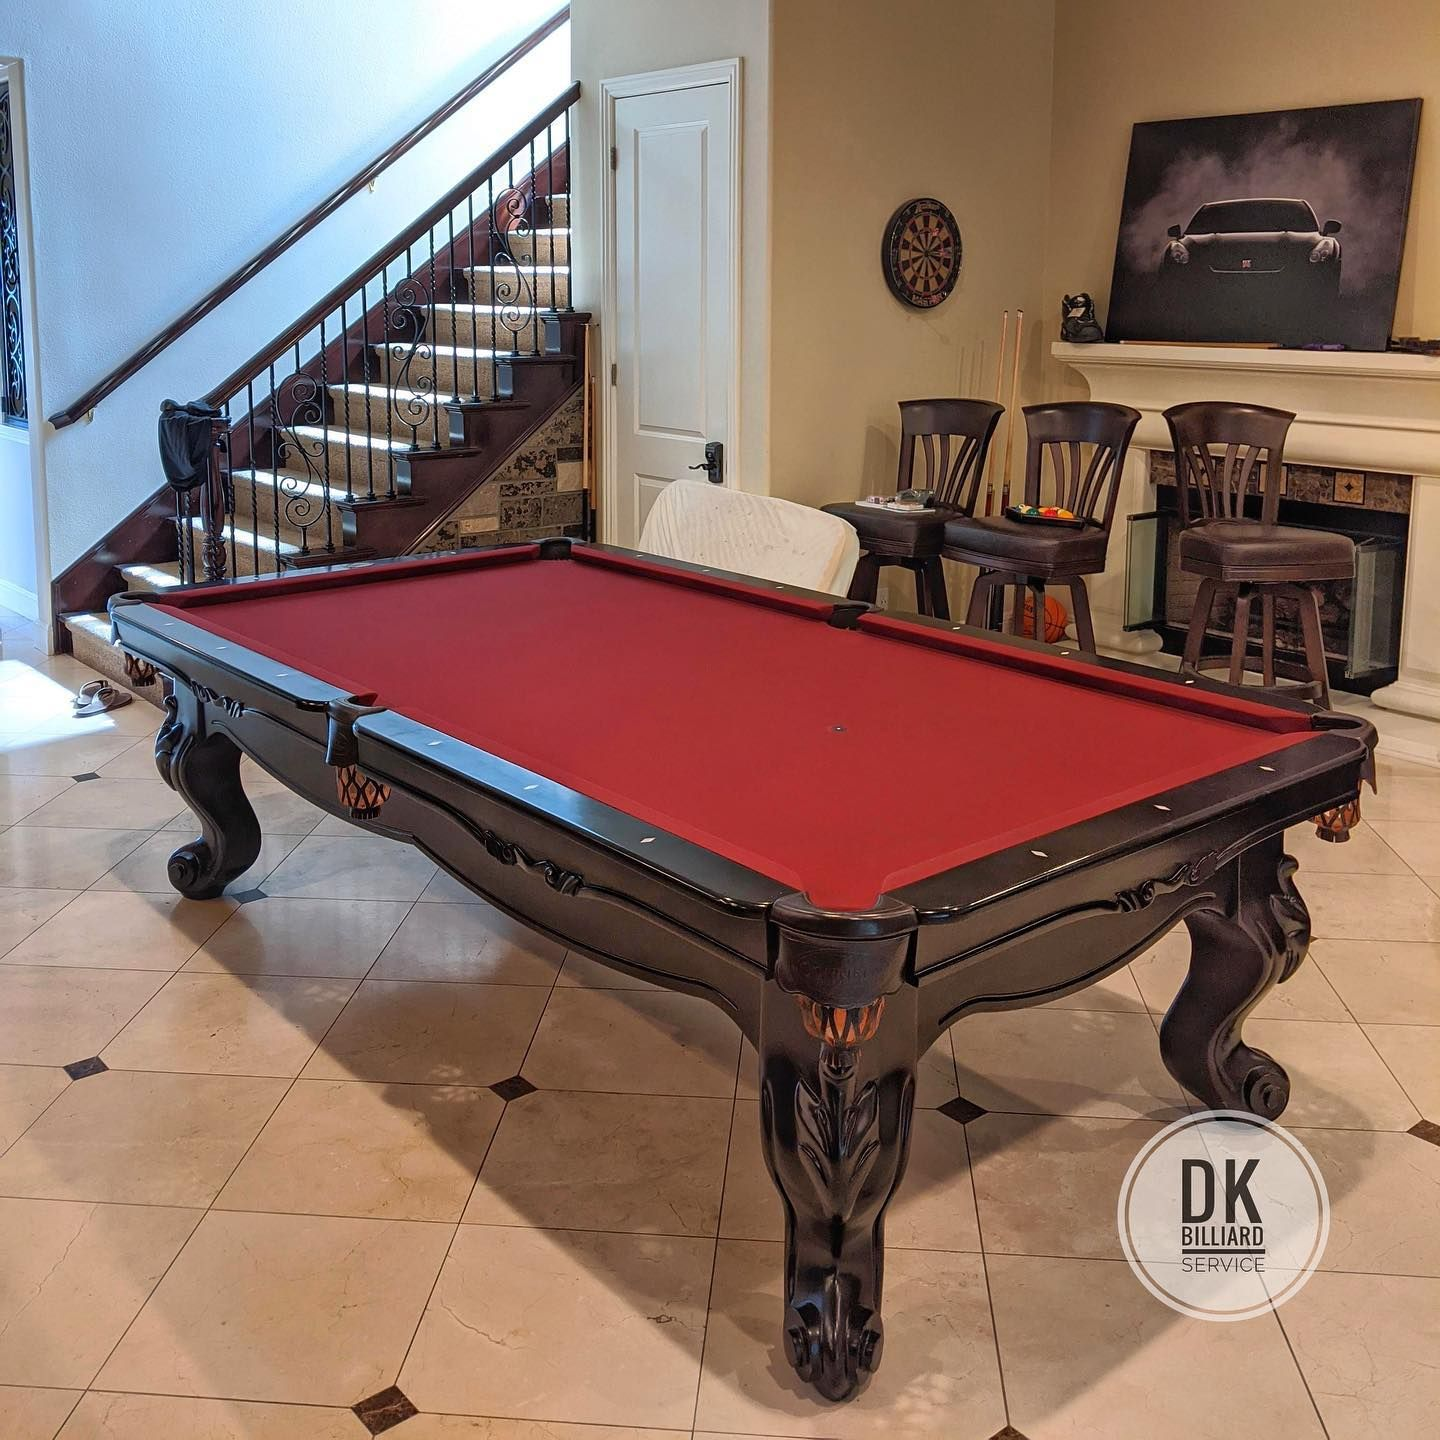 9 Foot Connelly Scottsdale Installed In Yorba Linda Home Tour Edition Wine Cloth And Espresso Stain On Solid Maple Wood 1 25 I In 2020 Pool Table Billiards Play Pool